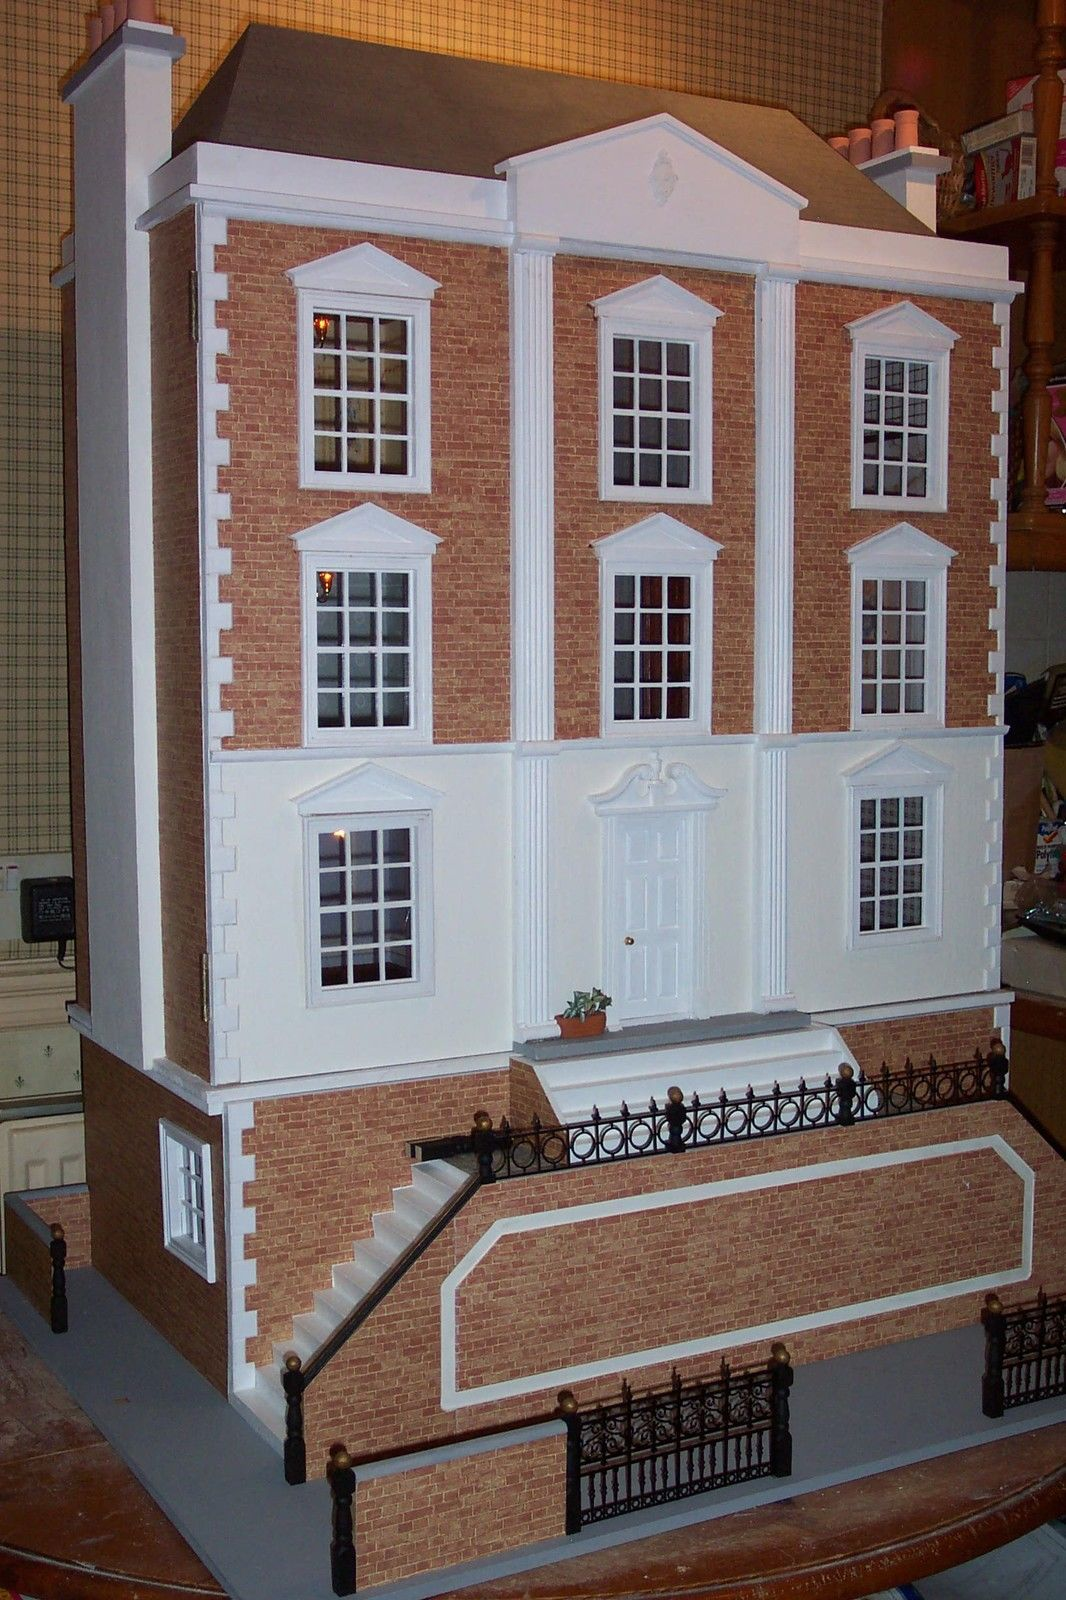 Dolls House Emporium Montgomery Hall, with basement rooms added. Contact me from my web site. .....Rick Maccione-Dollhouse Builder www.dollhousemansions.com